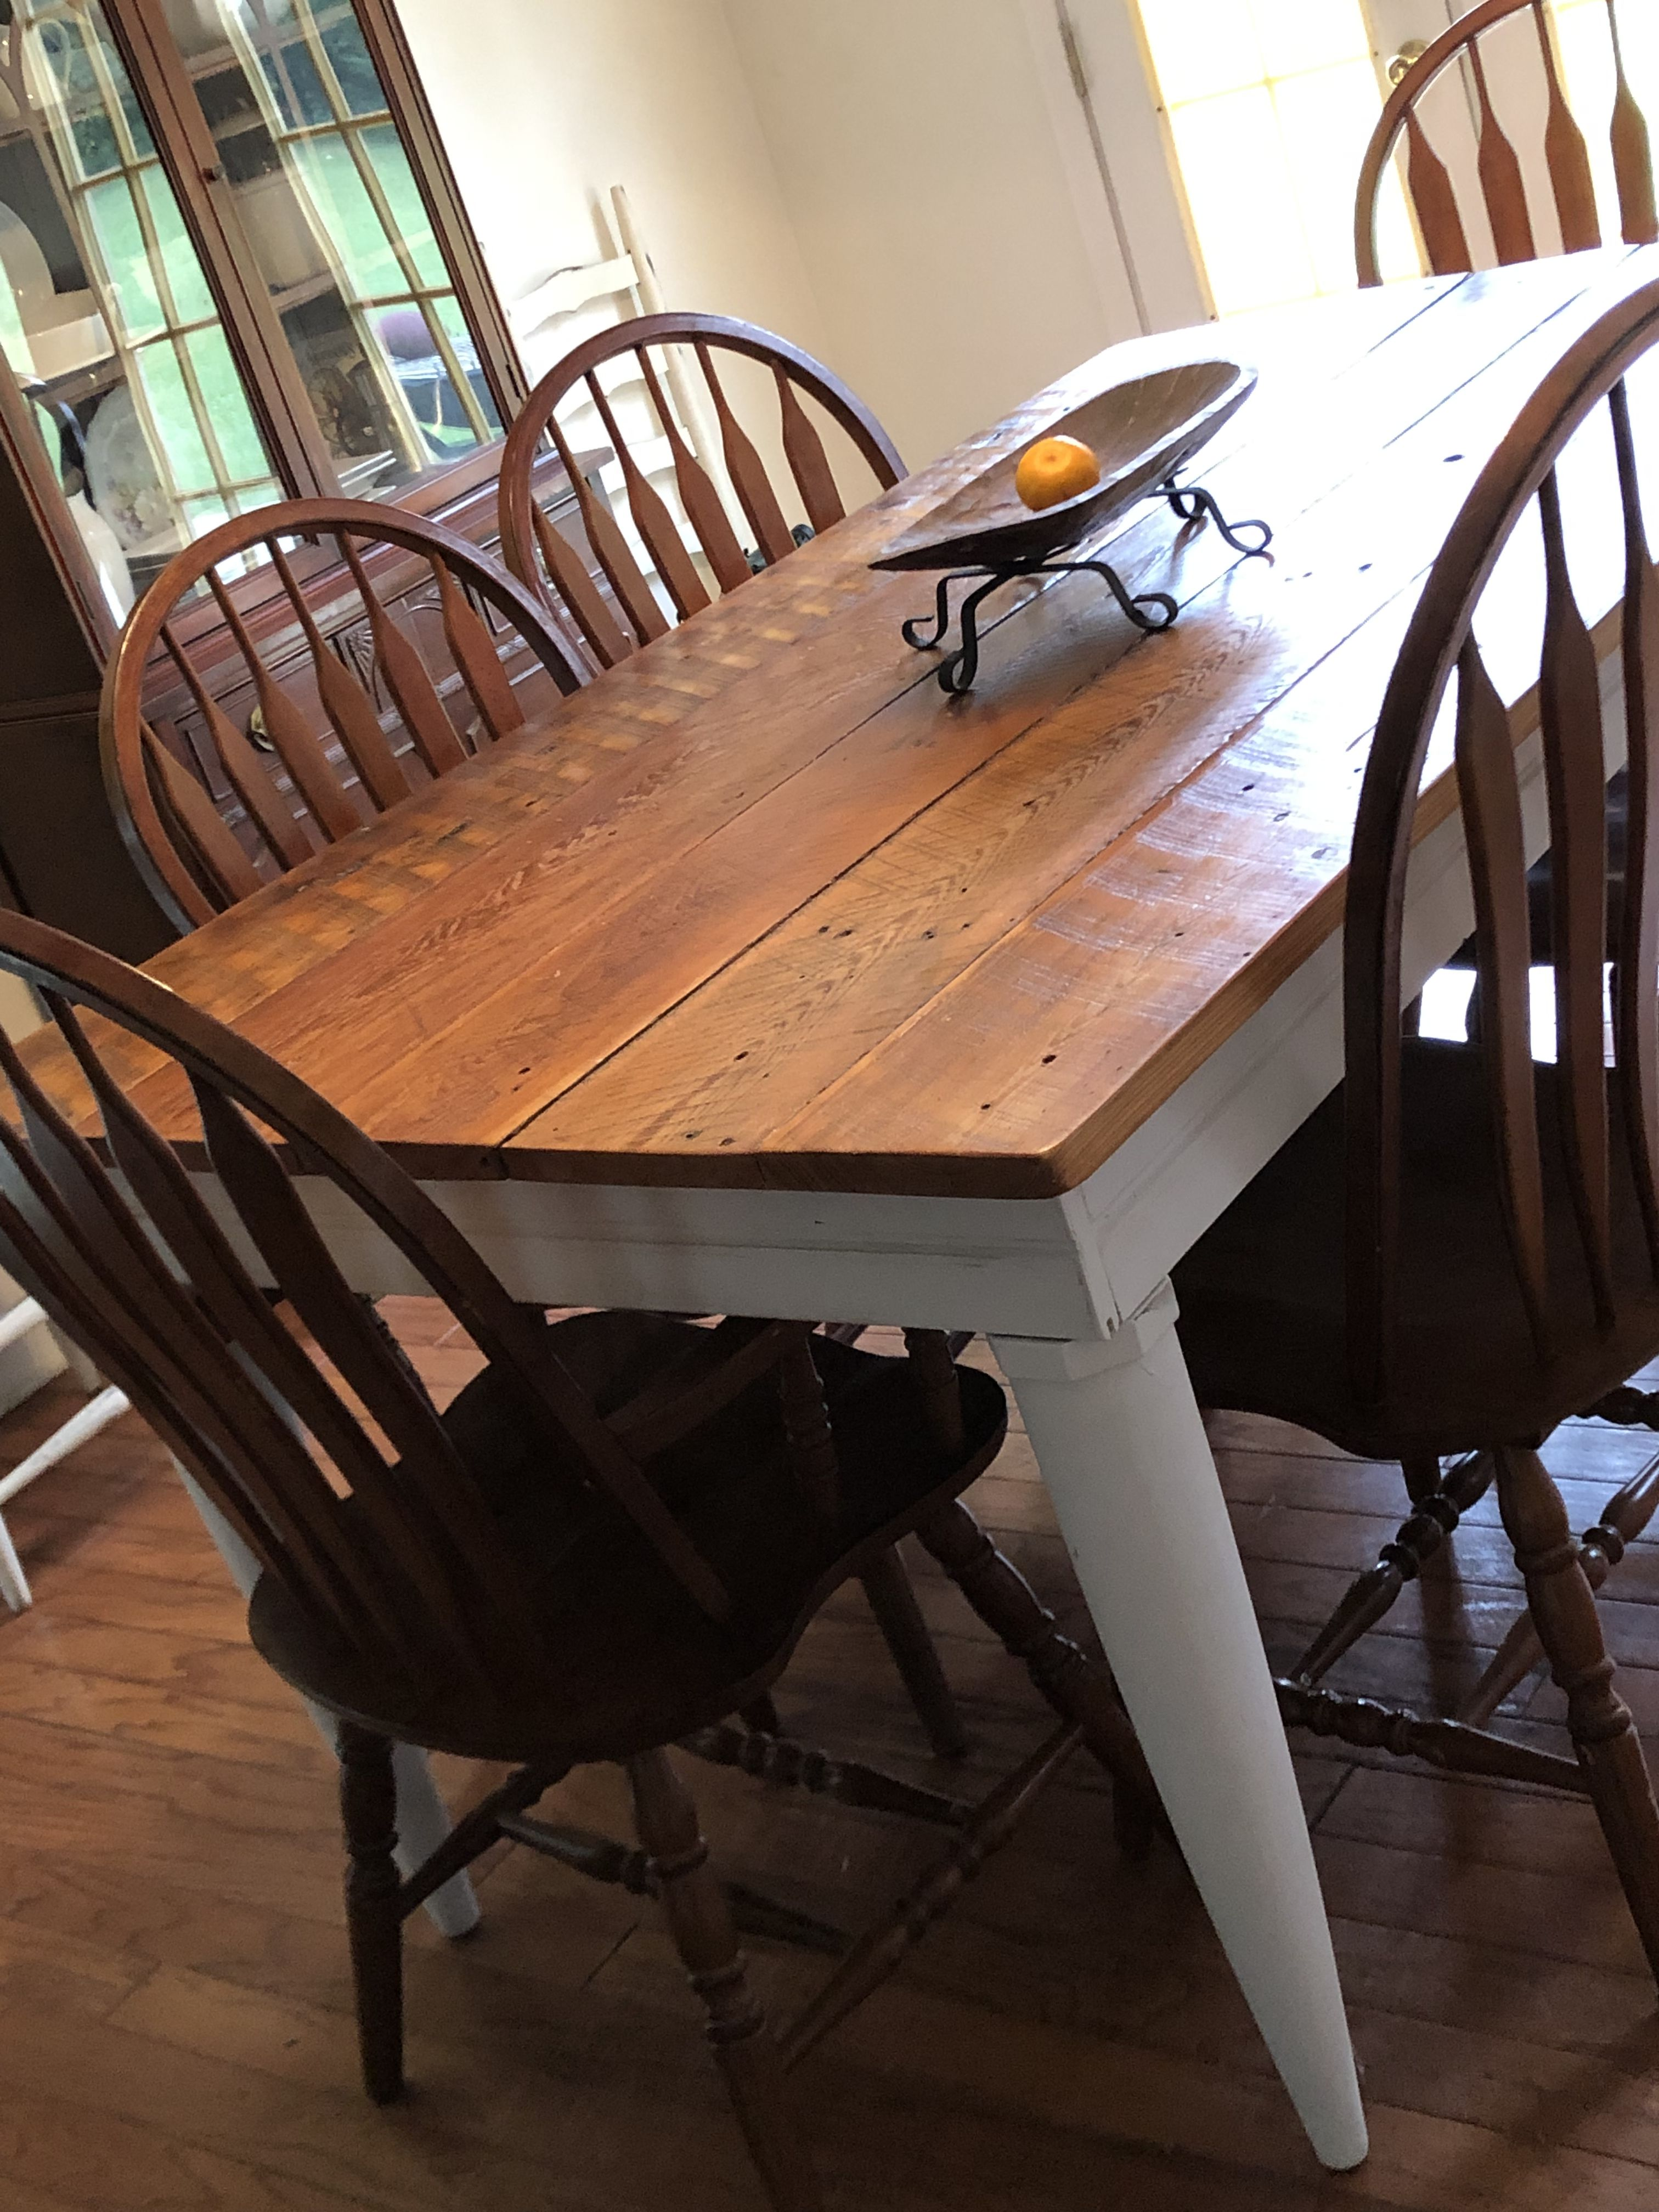 Cypress table farmhouse country rustic dining table